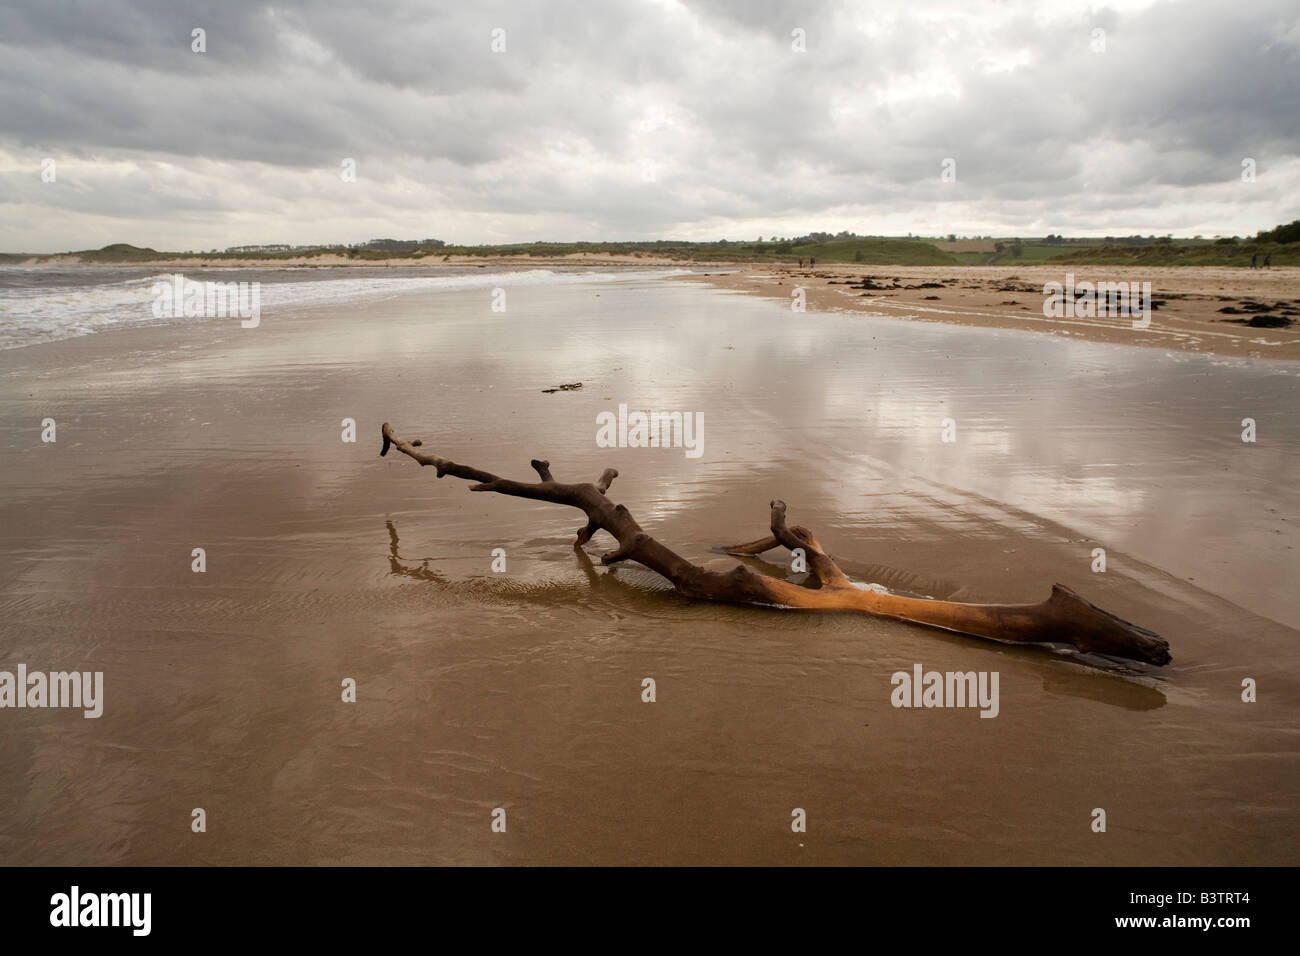 Driftwood has been washed onto Alnmouth beach in Northumberland. The sky is dark and overcast. - Stock Image